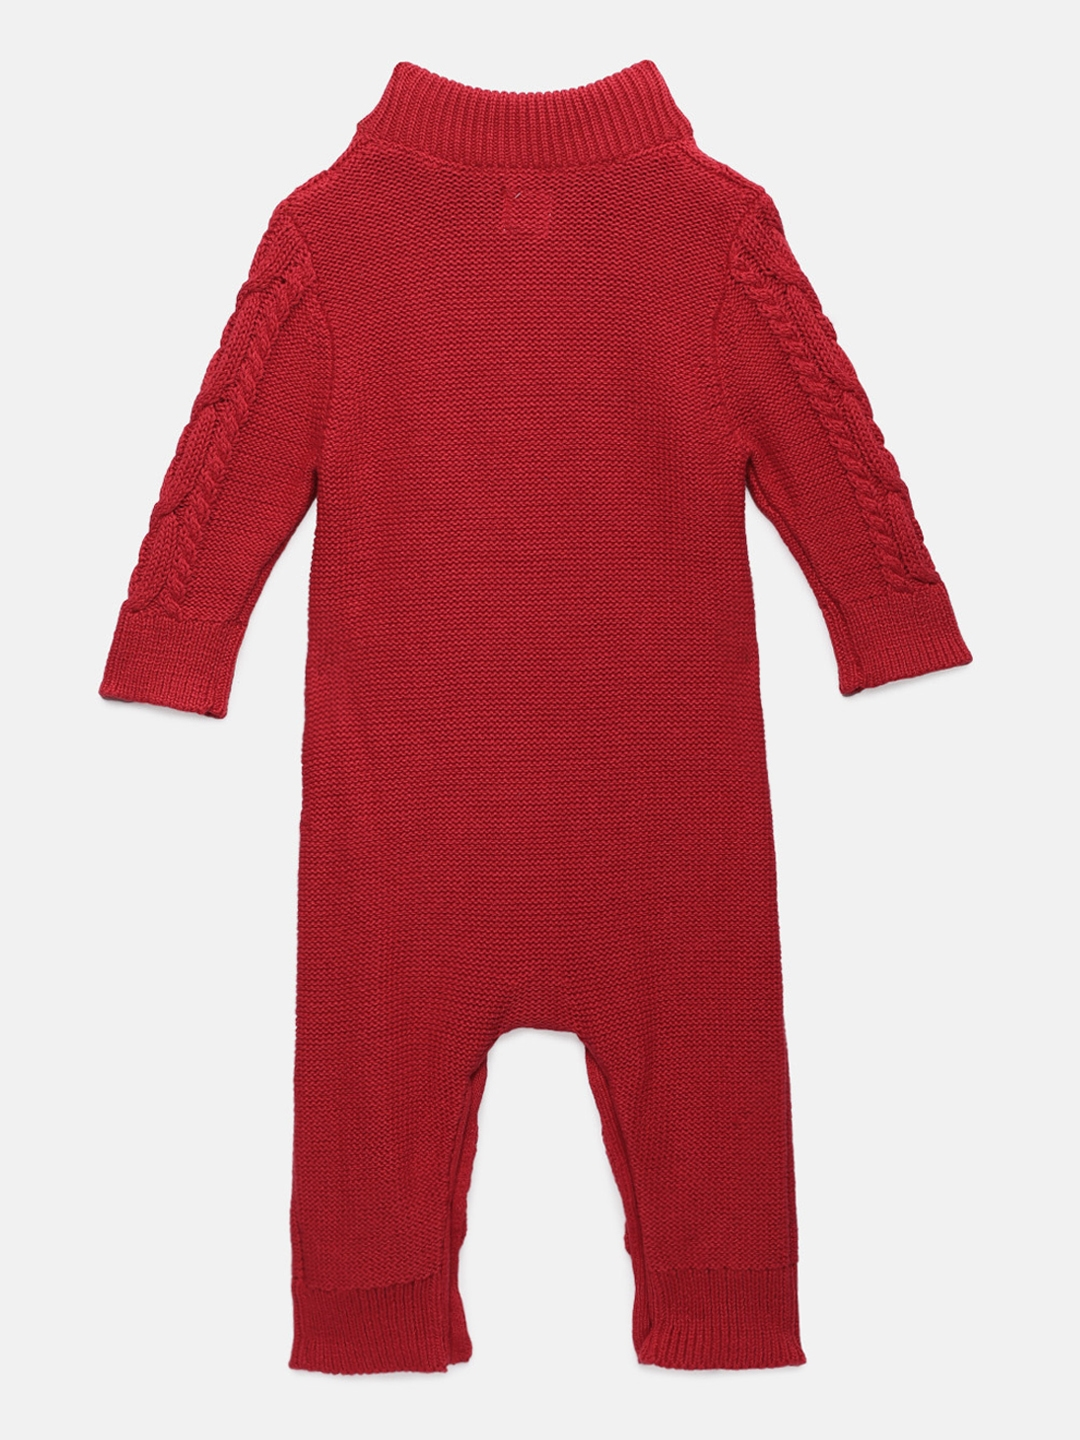 f2f5bfb8bf Buy GAP Baby Boys' Red Cable Knit One Piece - Rompers for Boys ...